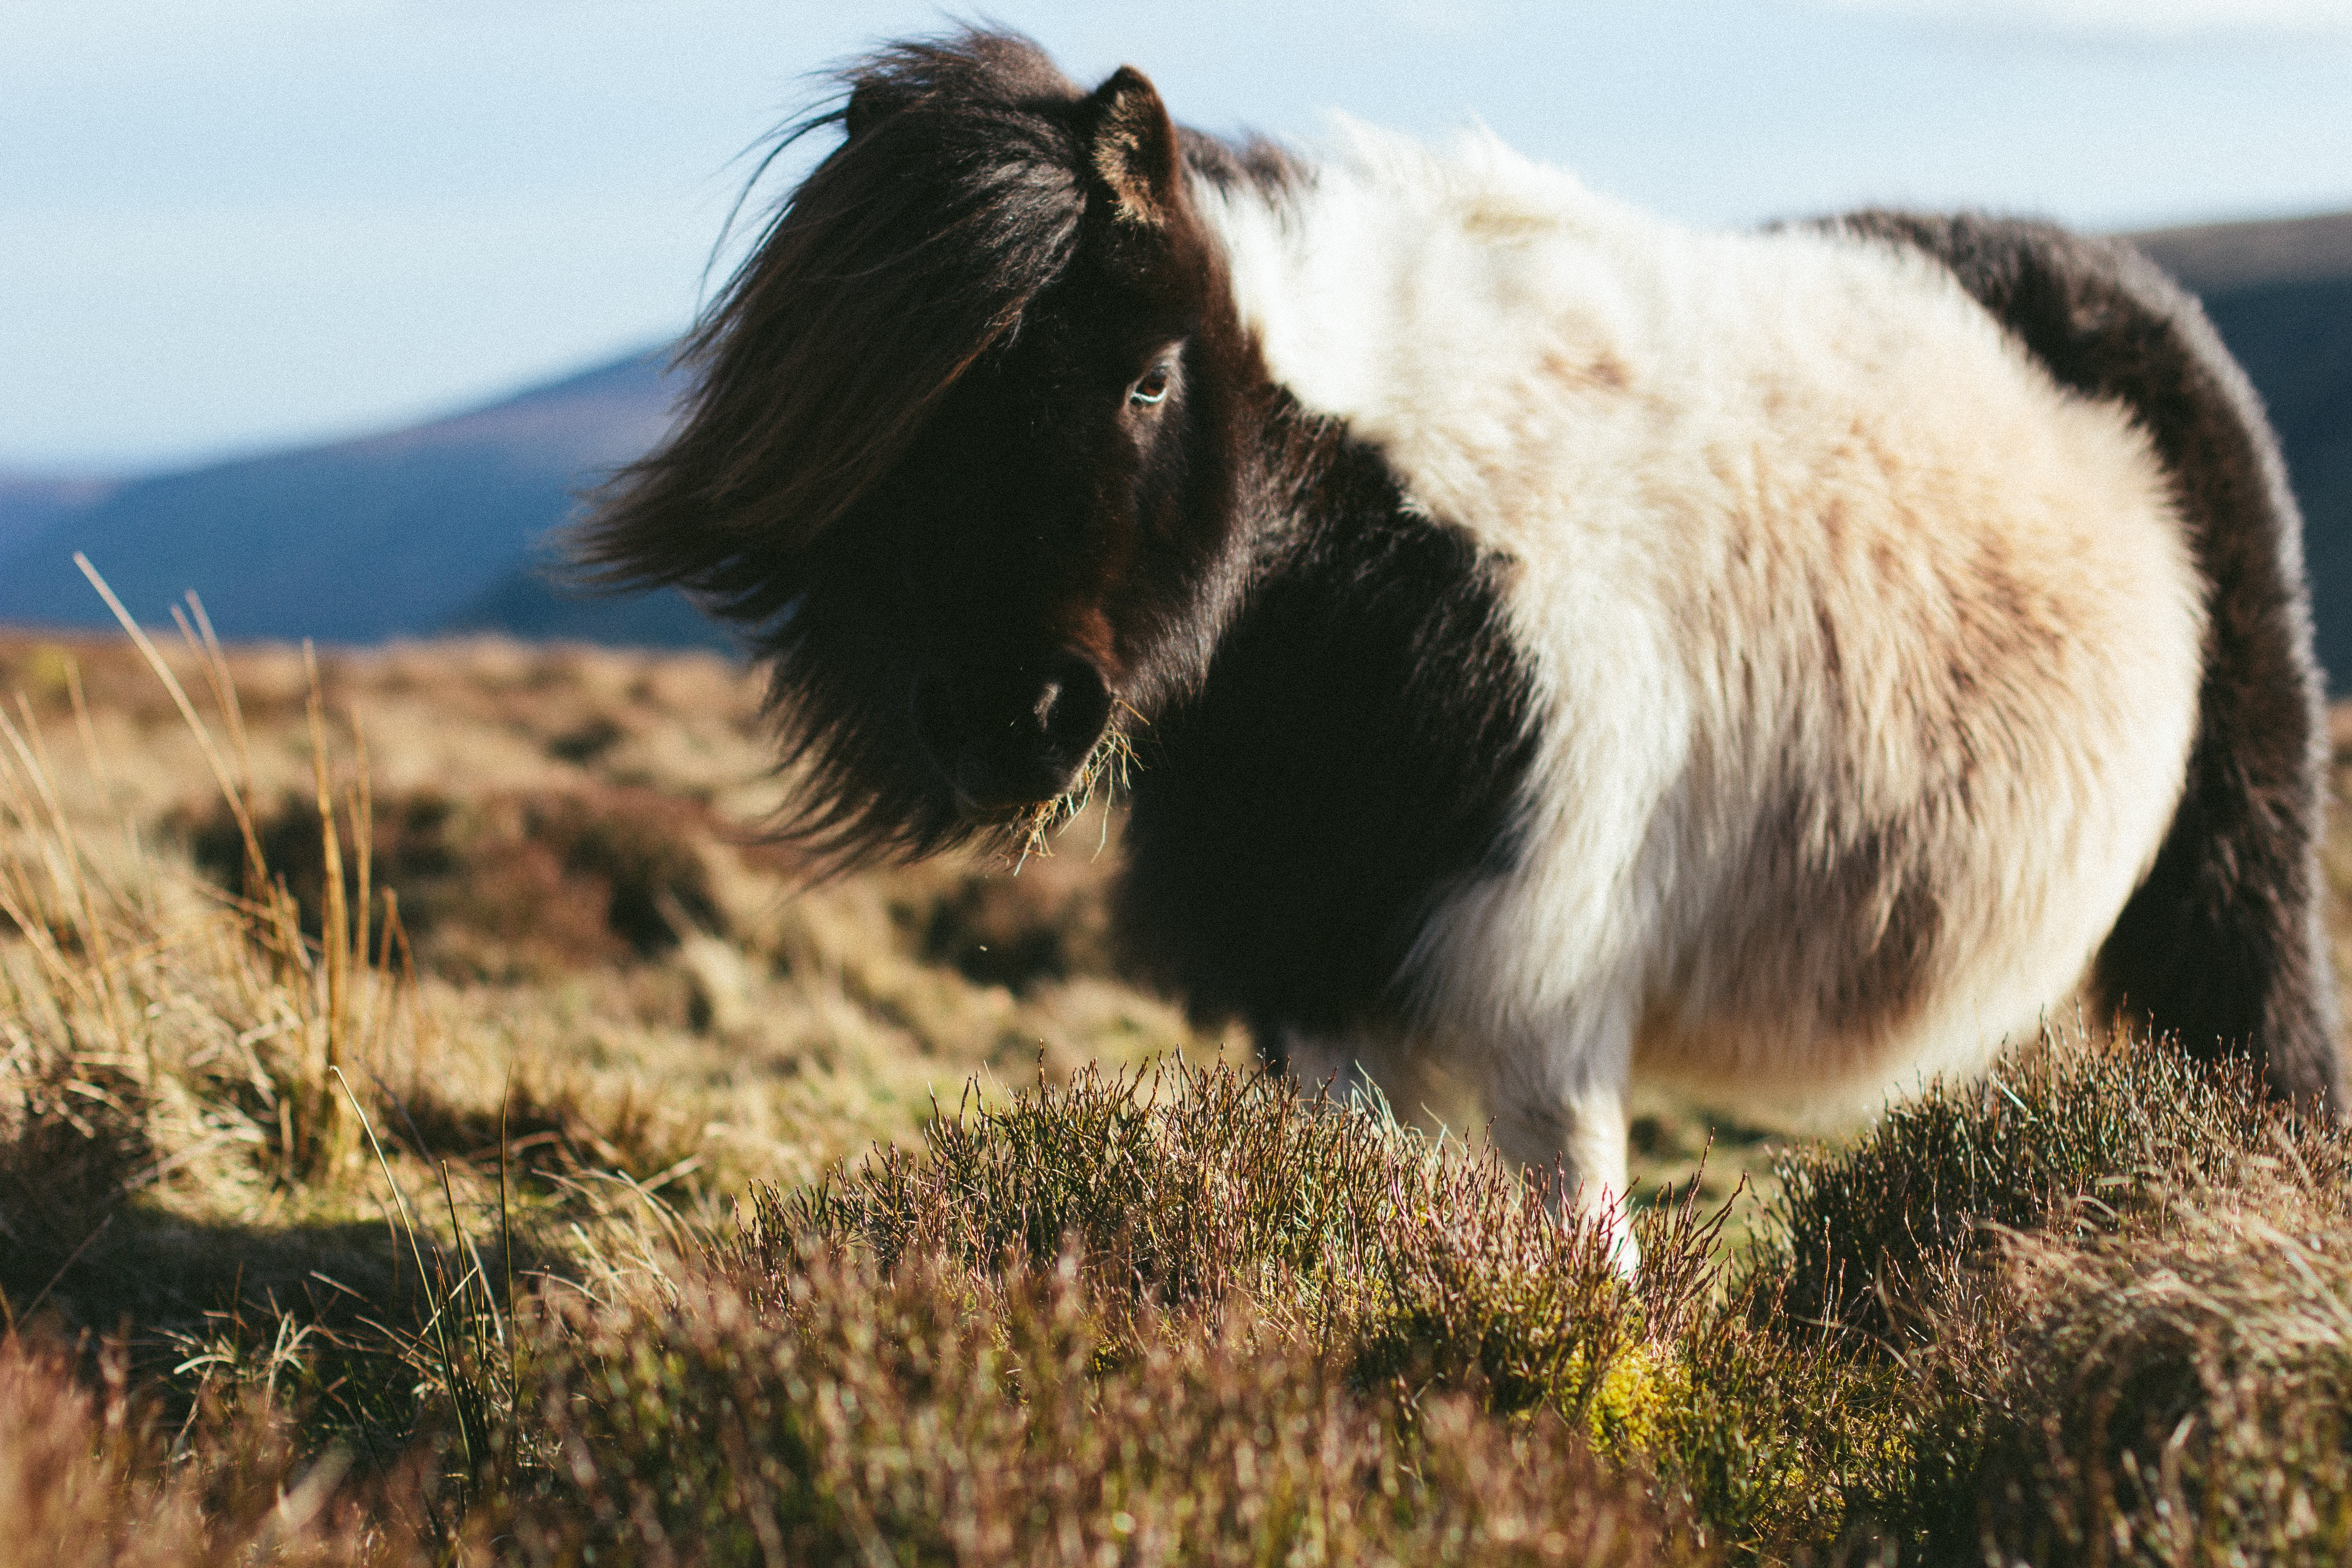 A shaggy piebald pony with a long mane grazing on thick grass